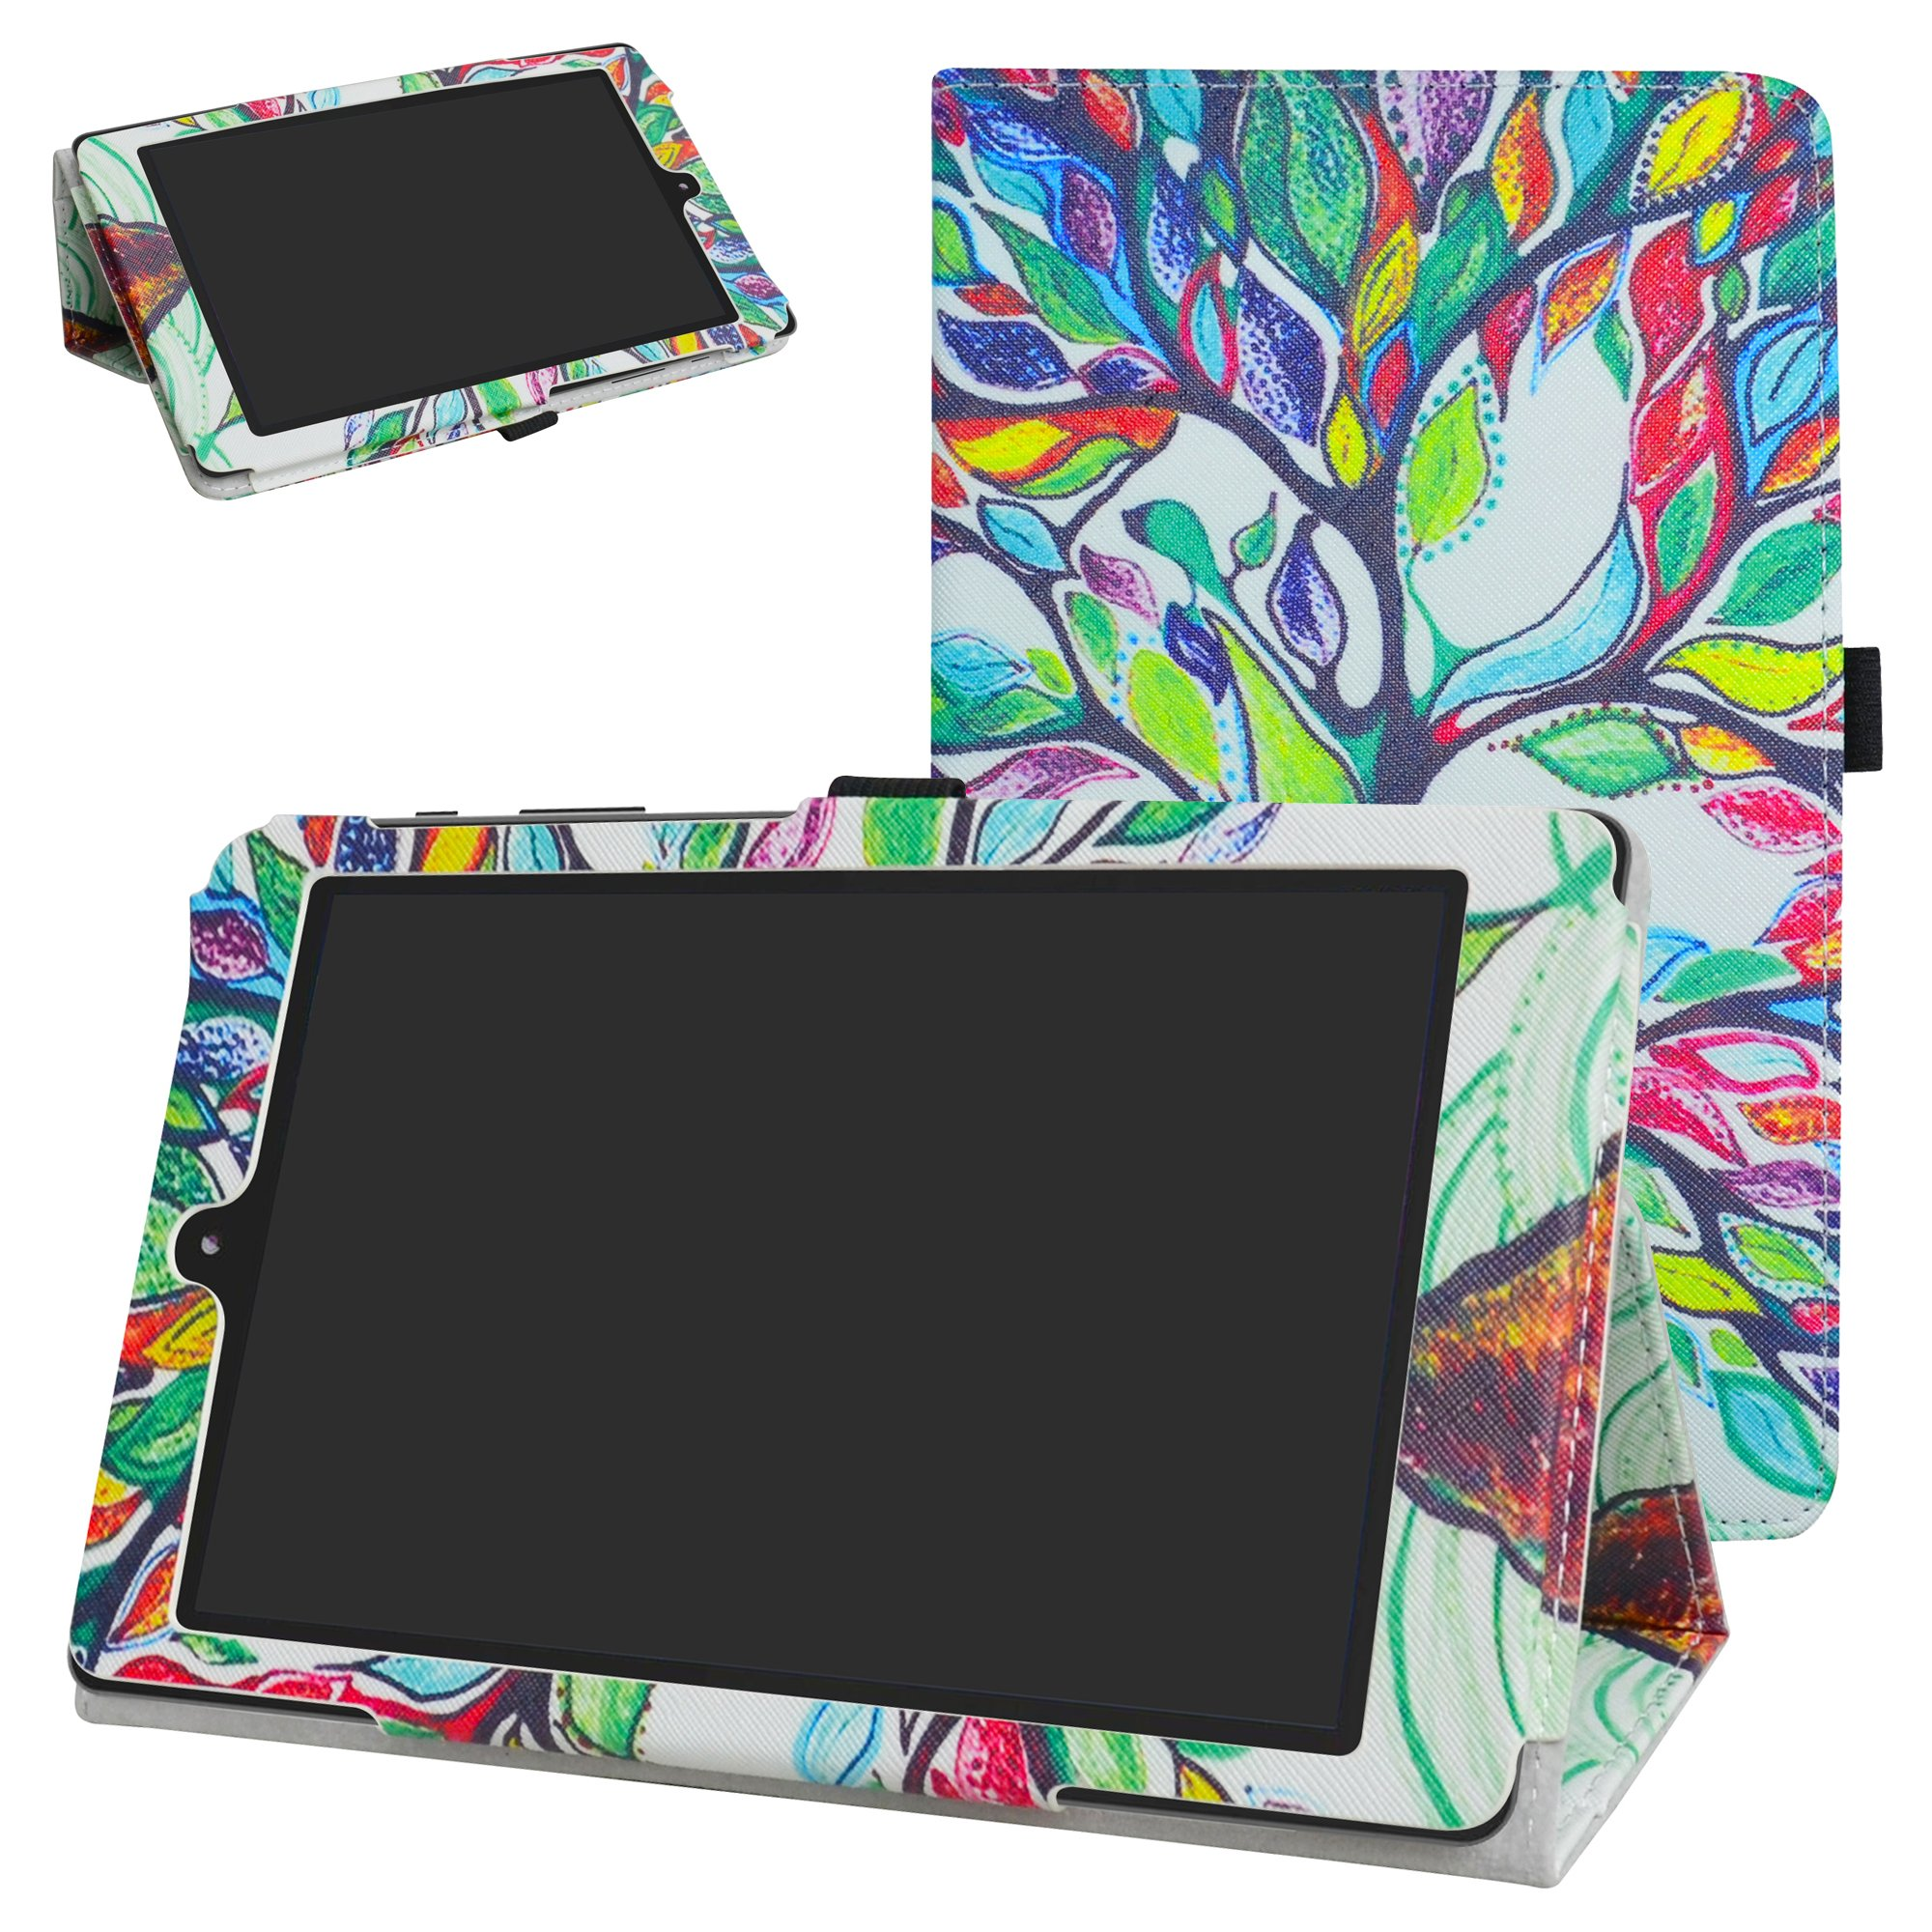 DigiLand DL8006 Case,Mama Mouth PU Leather Folio 2-folding Stand Cover for 8.0'' DigiLand DL8006 Android Tablet,Love Tree